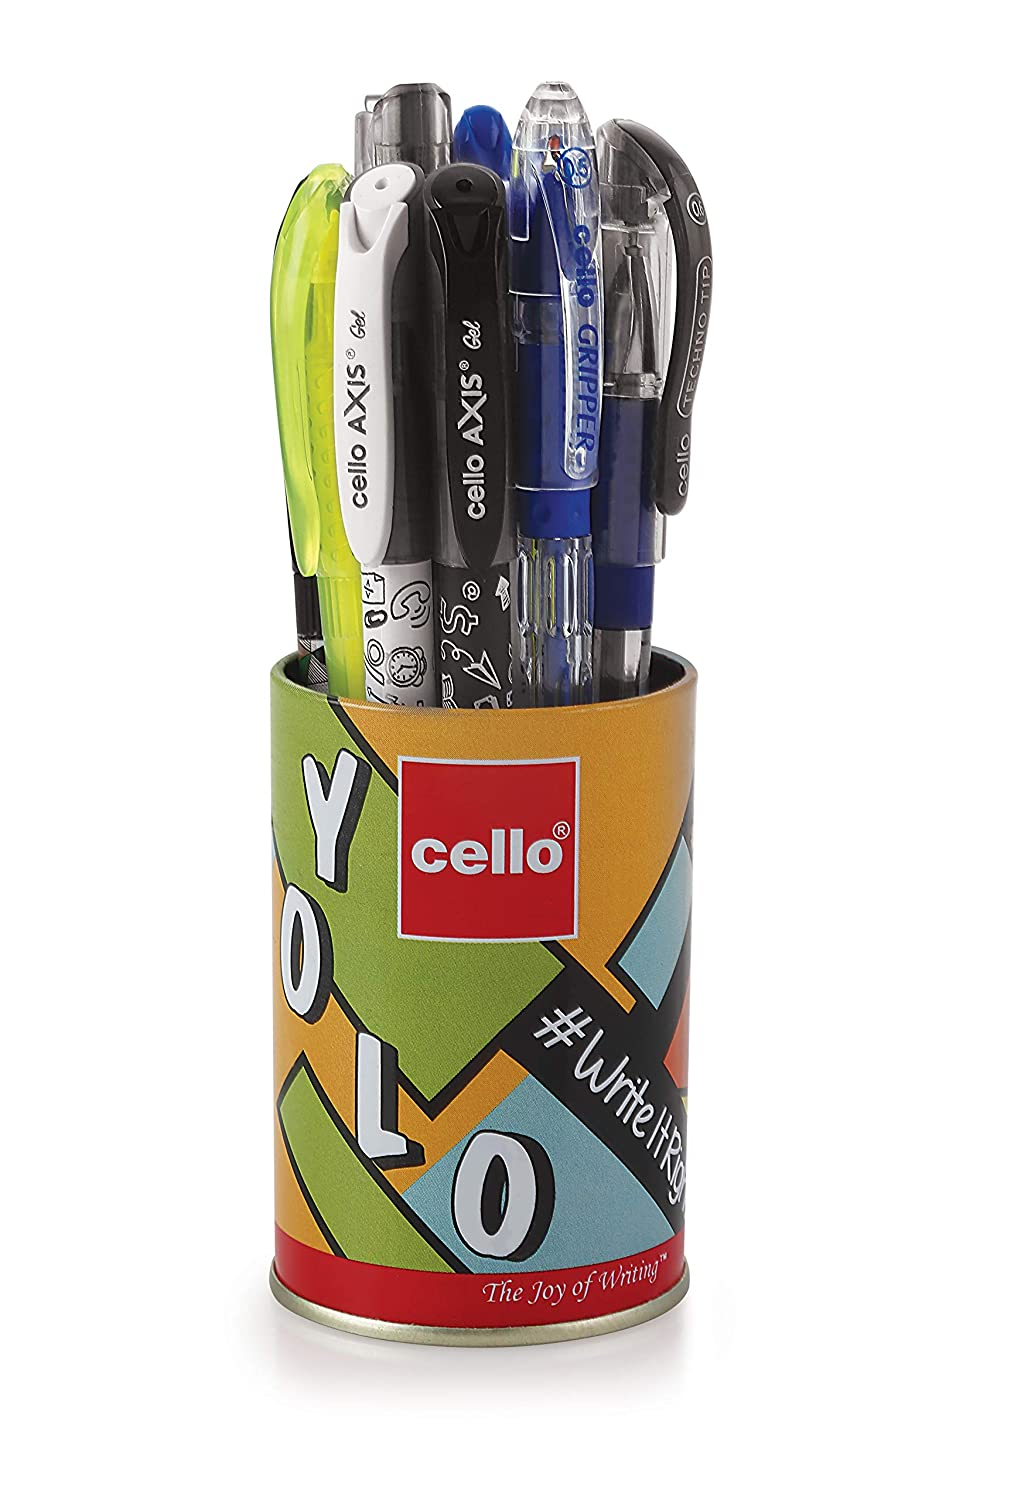 [Apply coupon] Cello Yolo Stationery Combo Pack (12 Stationery Items)|Includes Ball pens, Gel pens,Whiteboard Markers, Permanent marker, Highlighters & Mechanical Pencil| Perfect pack for school and college students